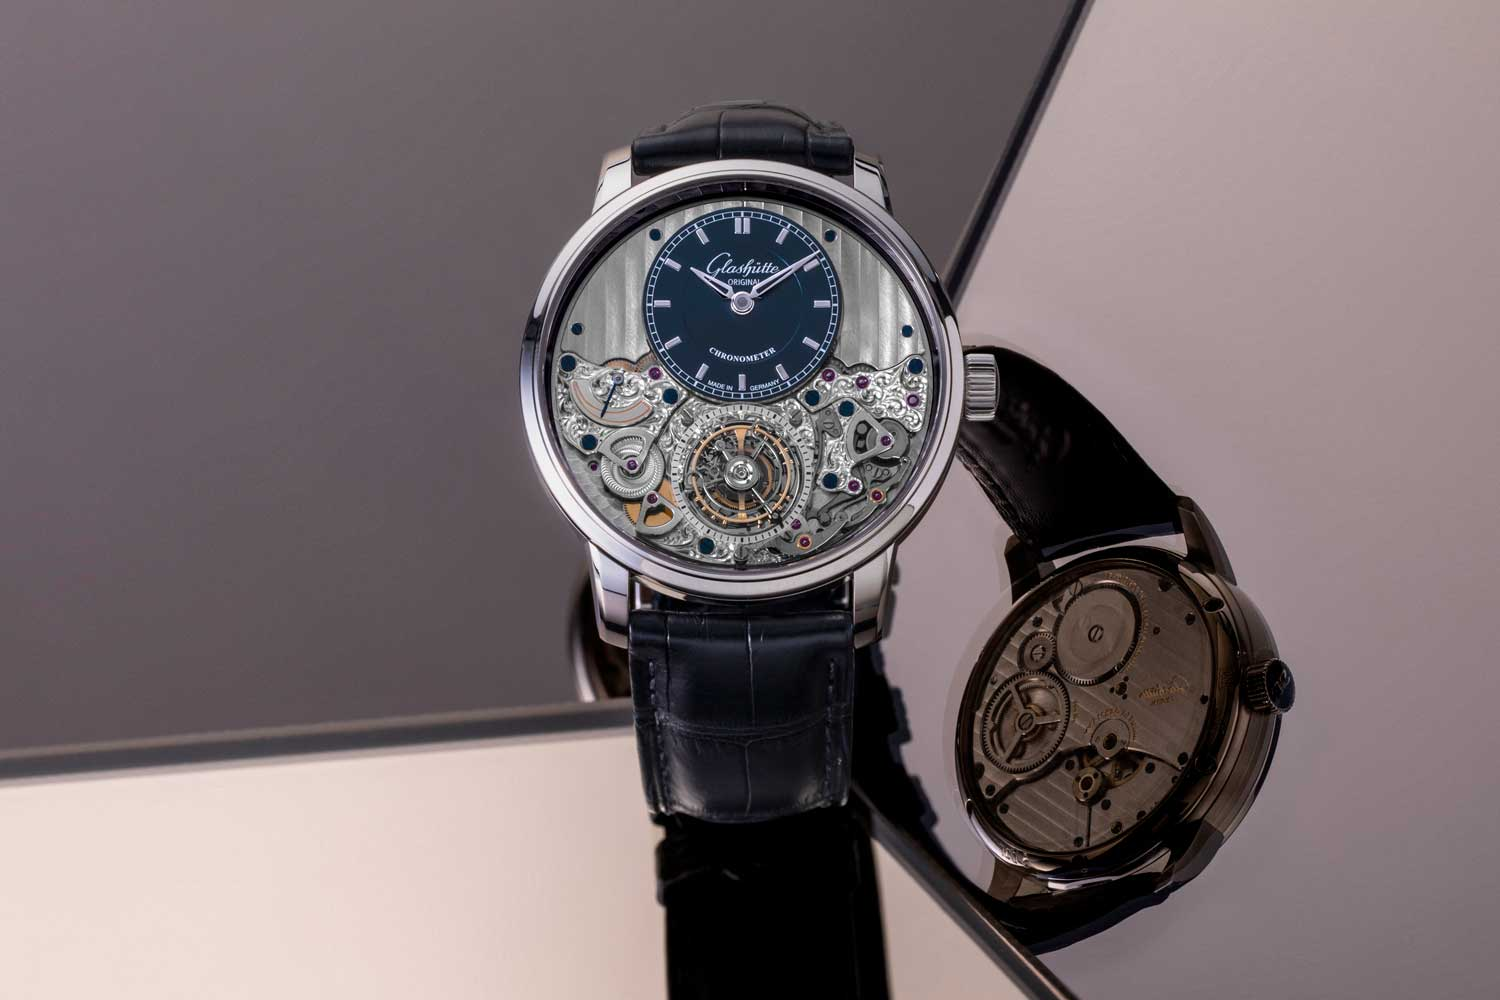 Effortlessly crossing borders and time zones, the easy to read Senator Cosmopolite is ready to travel the world. (©Revolution)